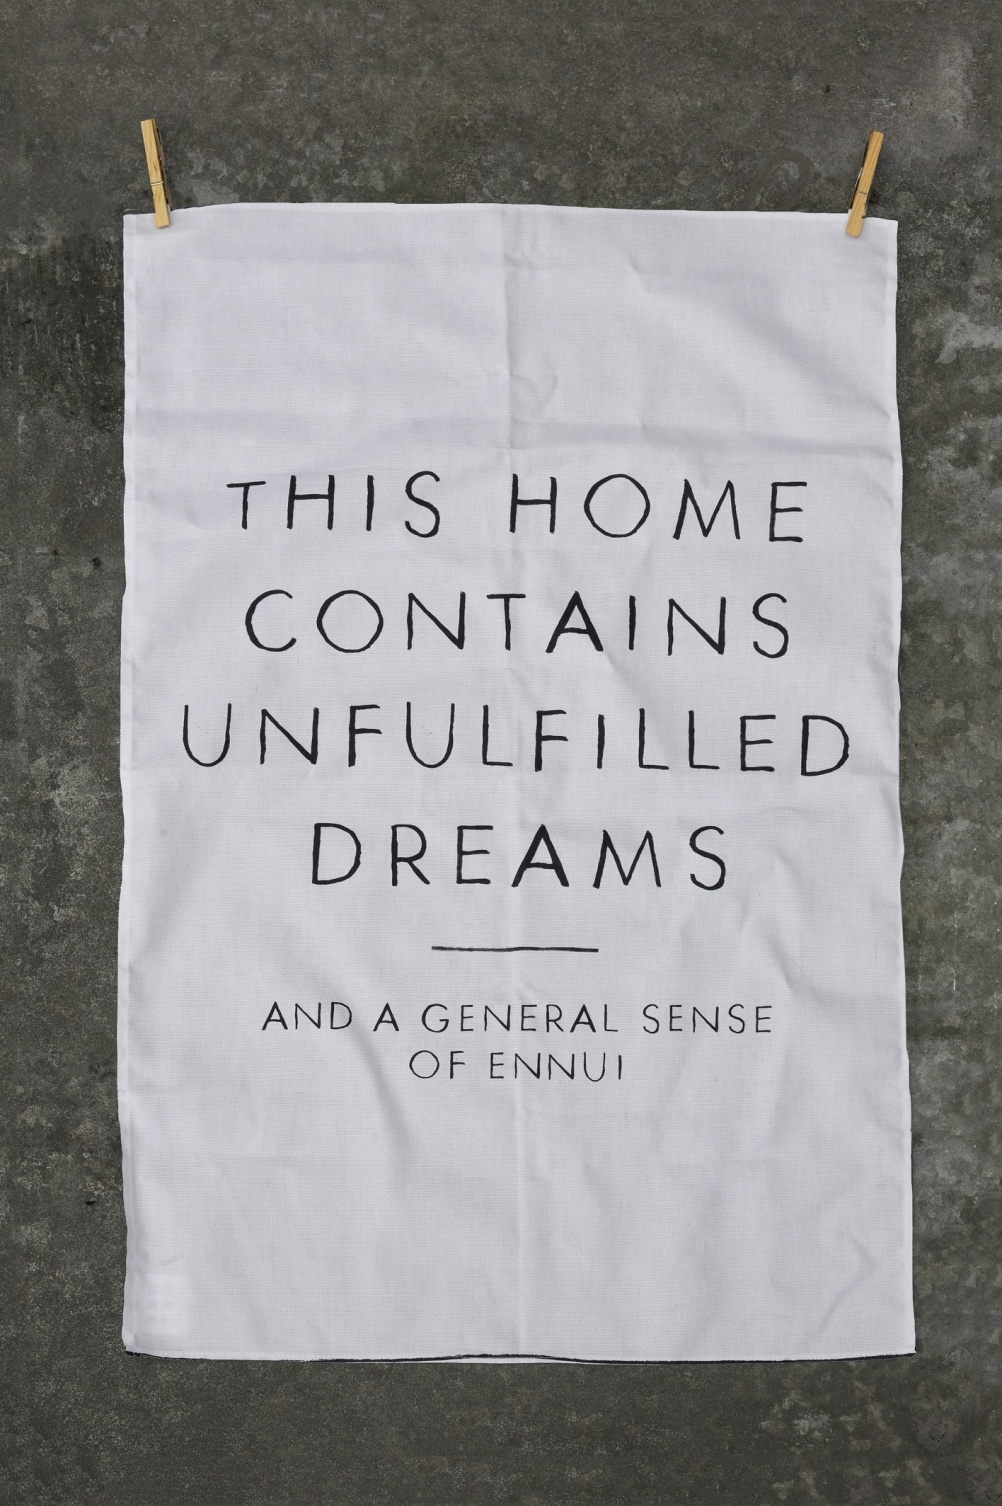 This Home Contains Unfulfilled Dreams from the Crooked Darlings collection